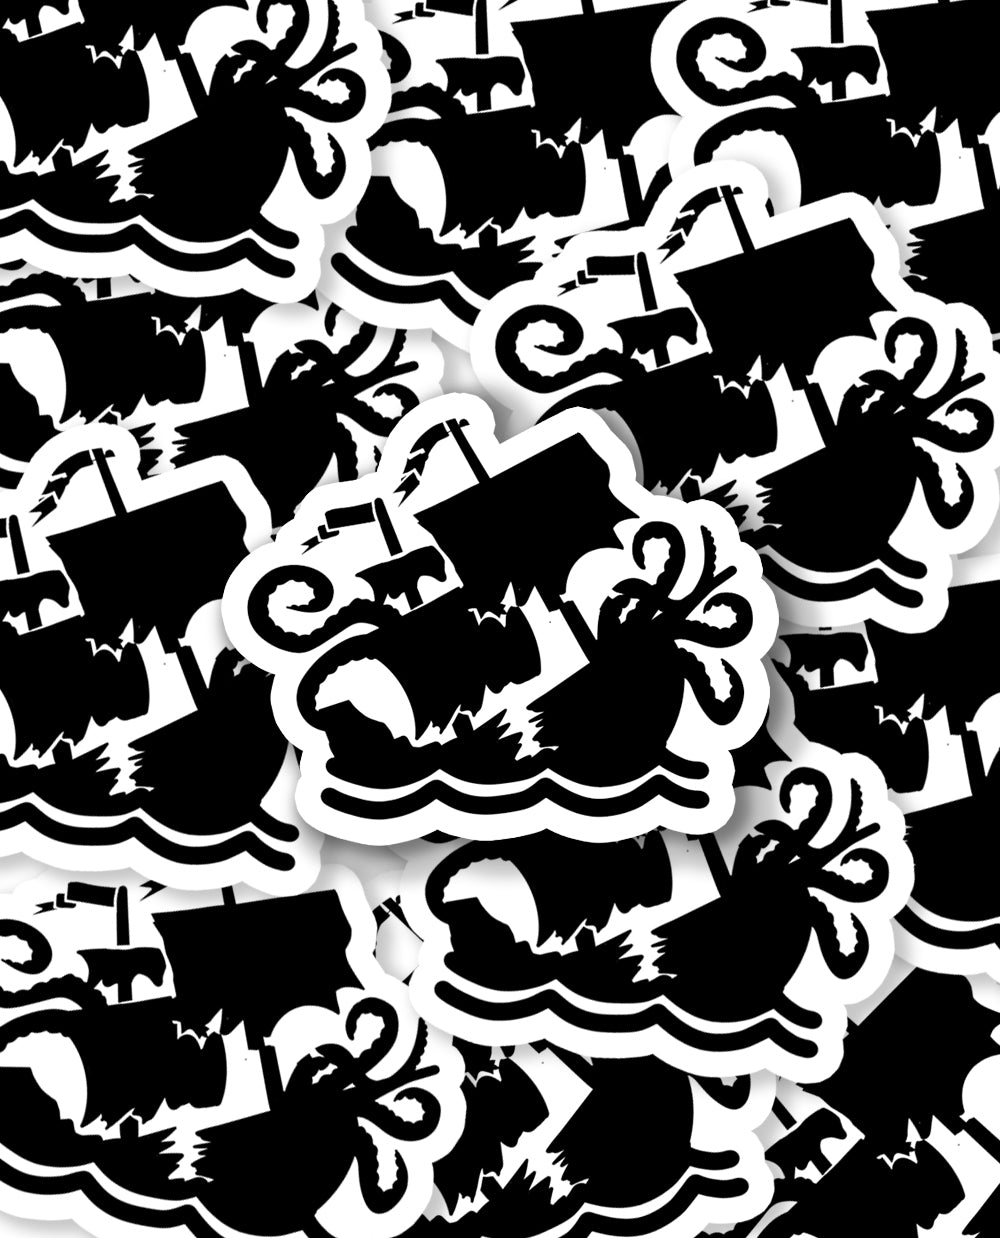 Kraken Sticker Large